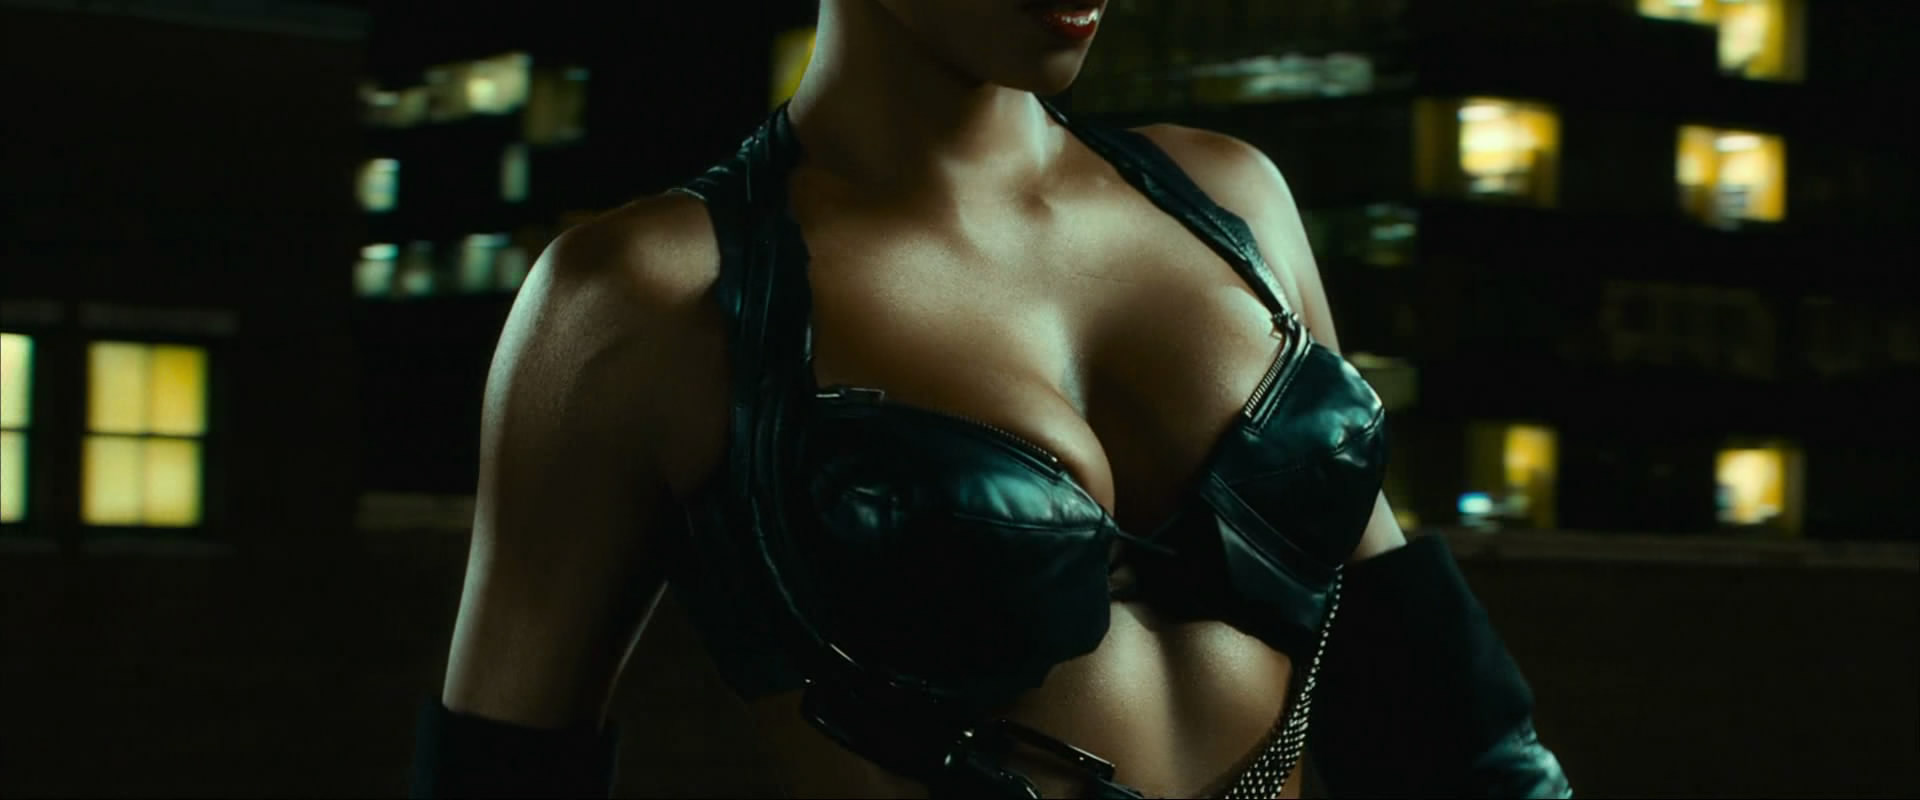 Catwoman halle berry sex lasbein adult films